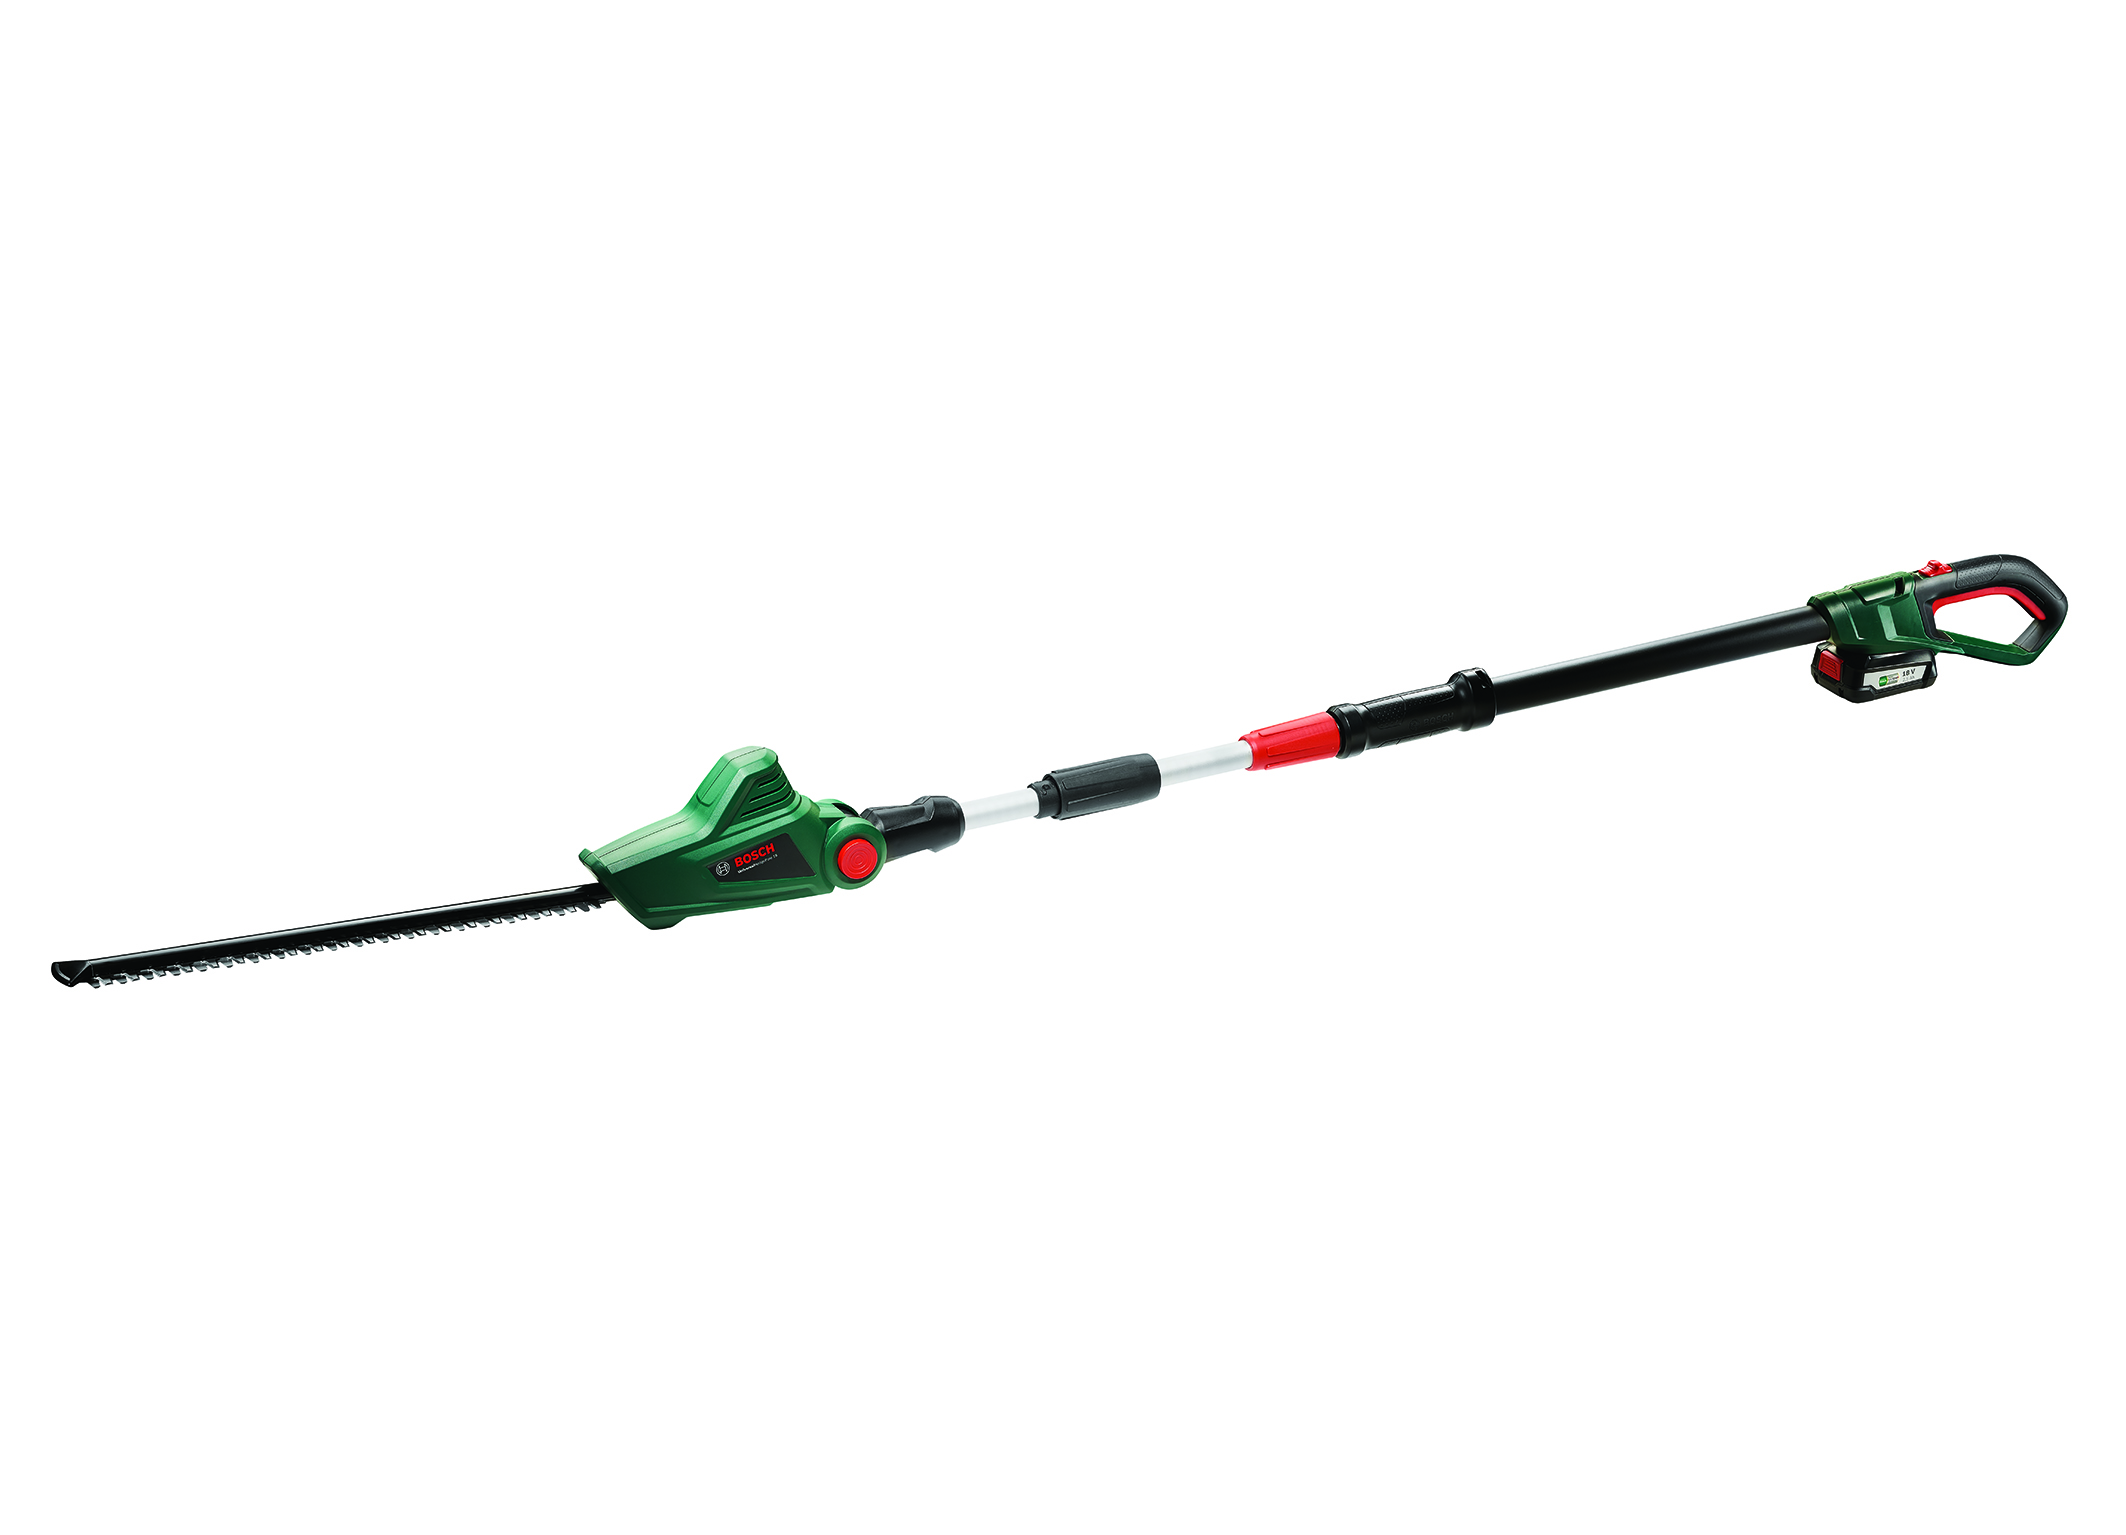 Bosch Universal Chain Pole 18 Long Reach Telescopic Chainsaw Cutter Pruner 18v